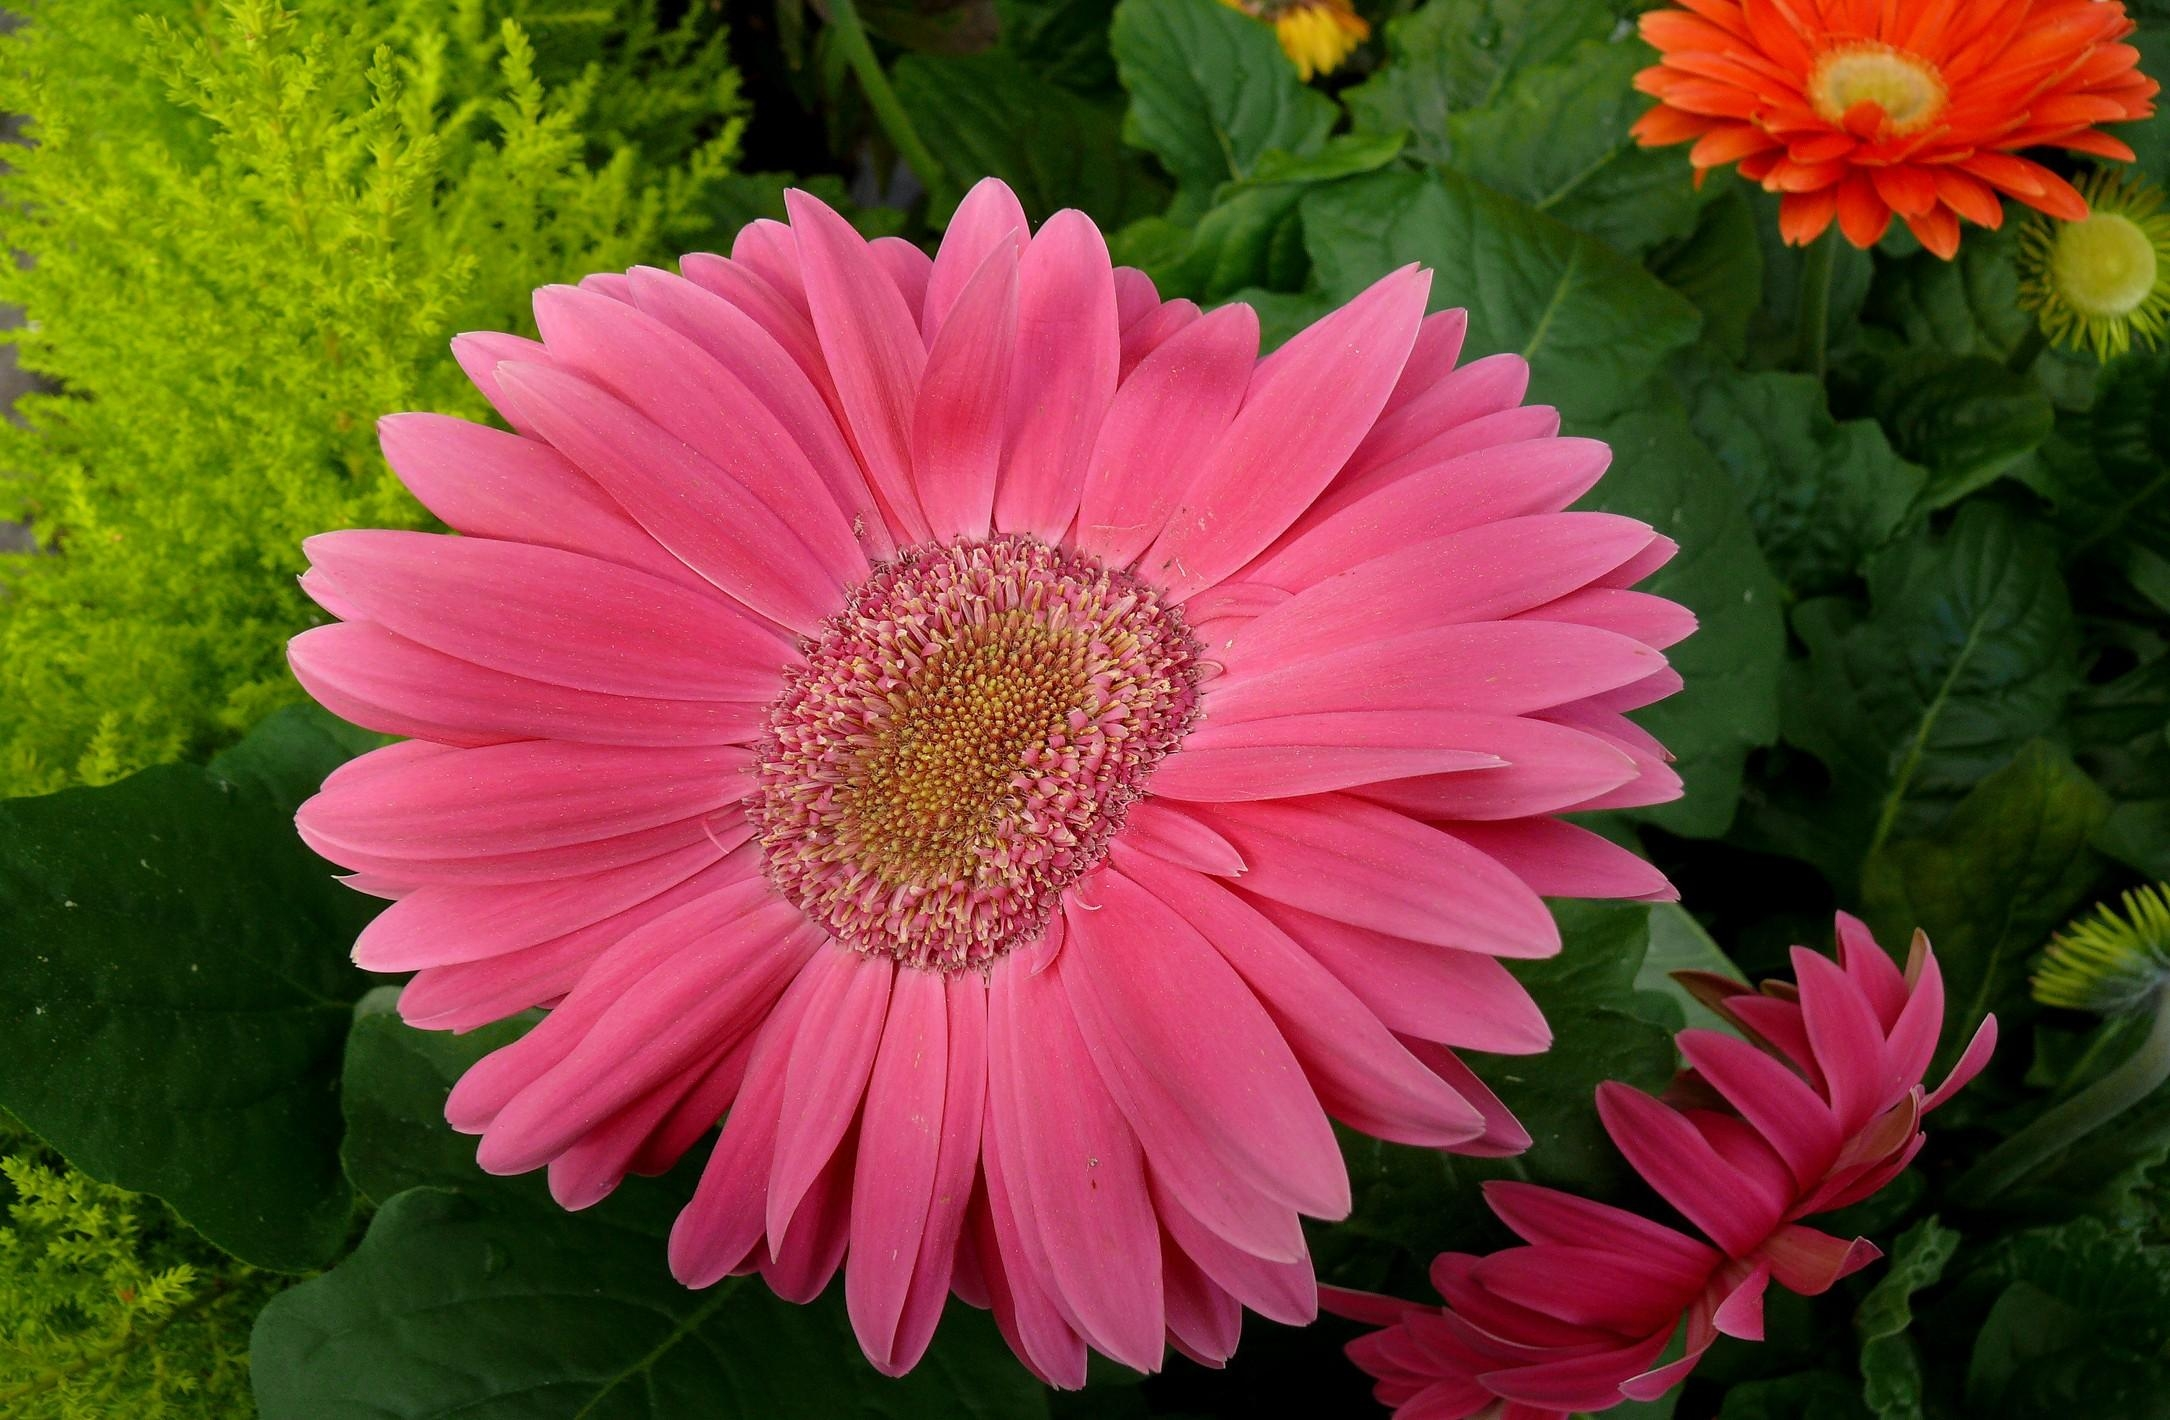 52484 download wallpaper Flowers, Petals, Close-Up, Leaves, Gerberas screensavers and pictures for free